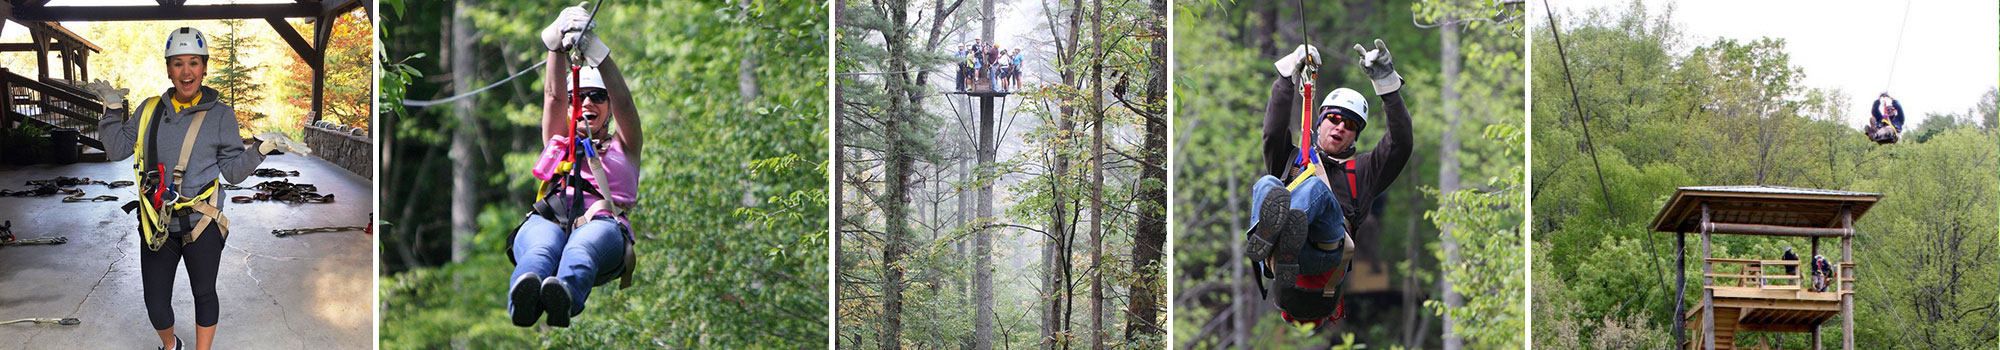 ZipLine Canopy Tours of Blue Ridge, Georgoa